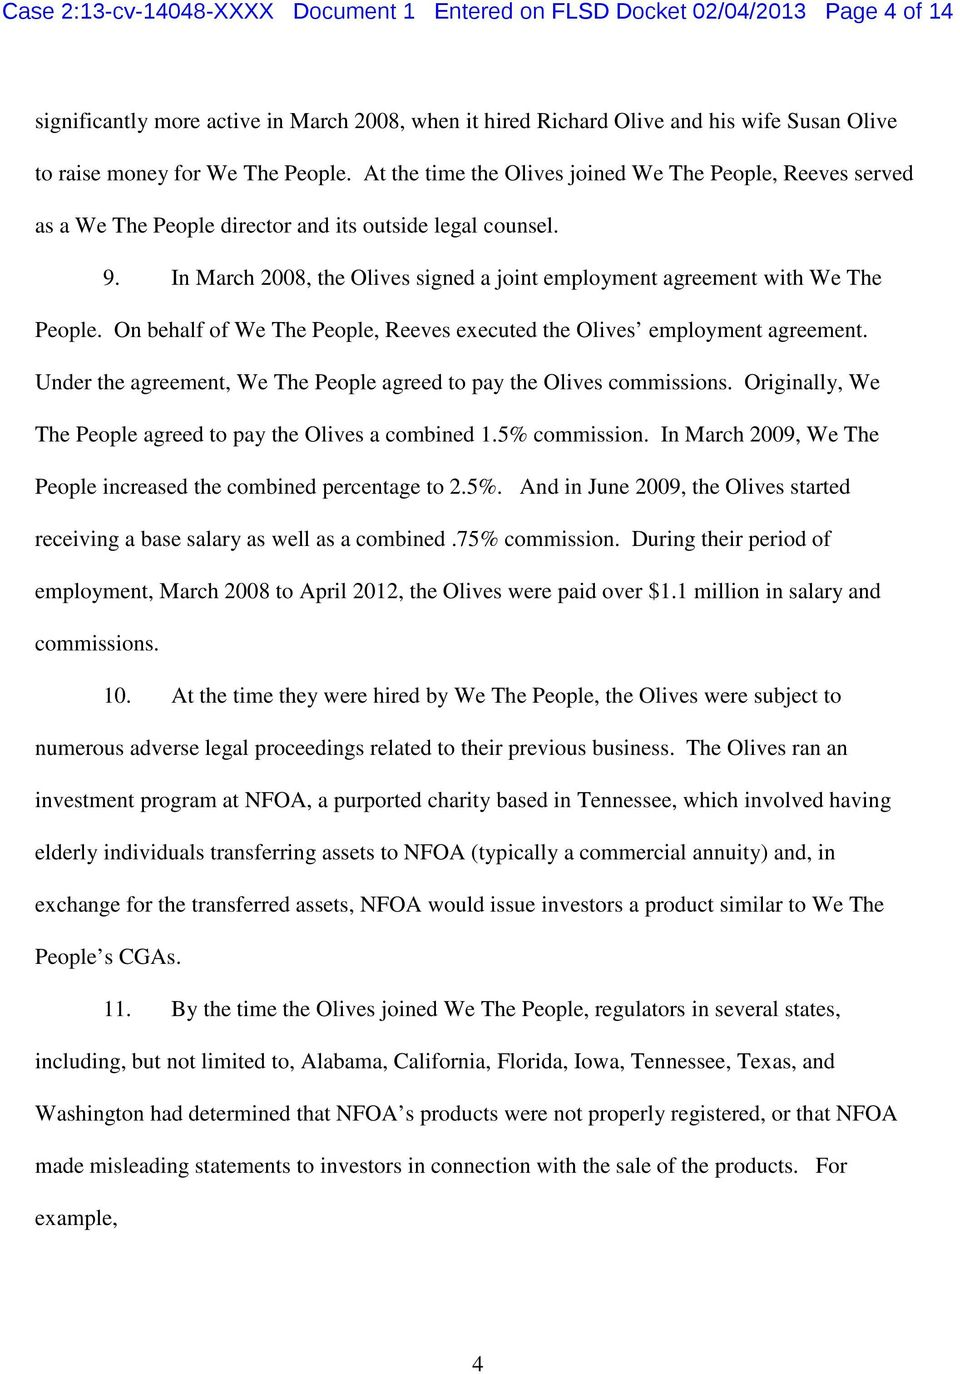 In March 2008, the Olives signed a joint employment agreement with We The People. On behalf of We The People, Reeves executed the Olives employment agreement.